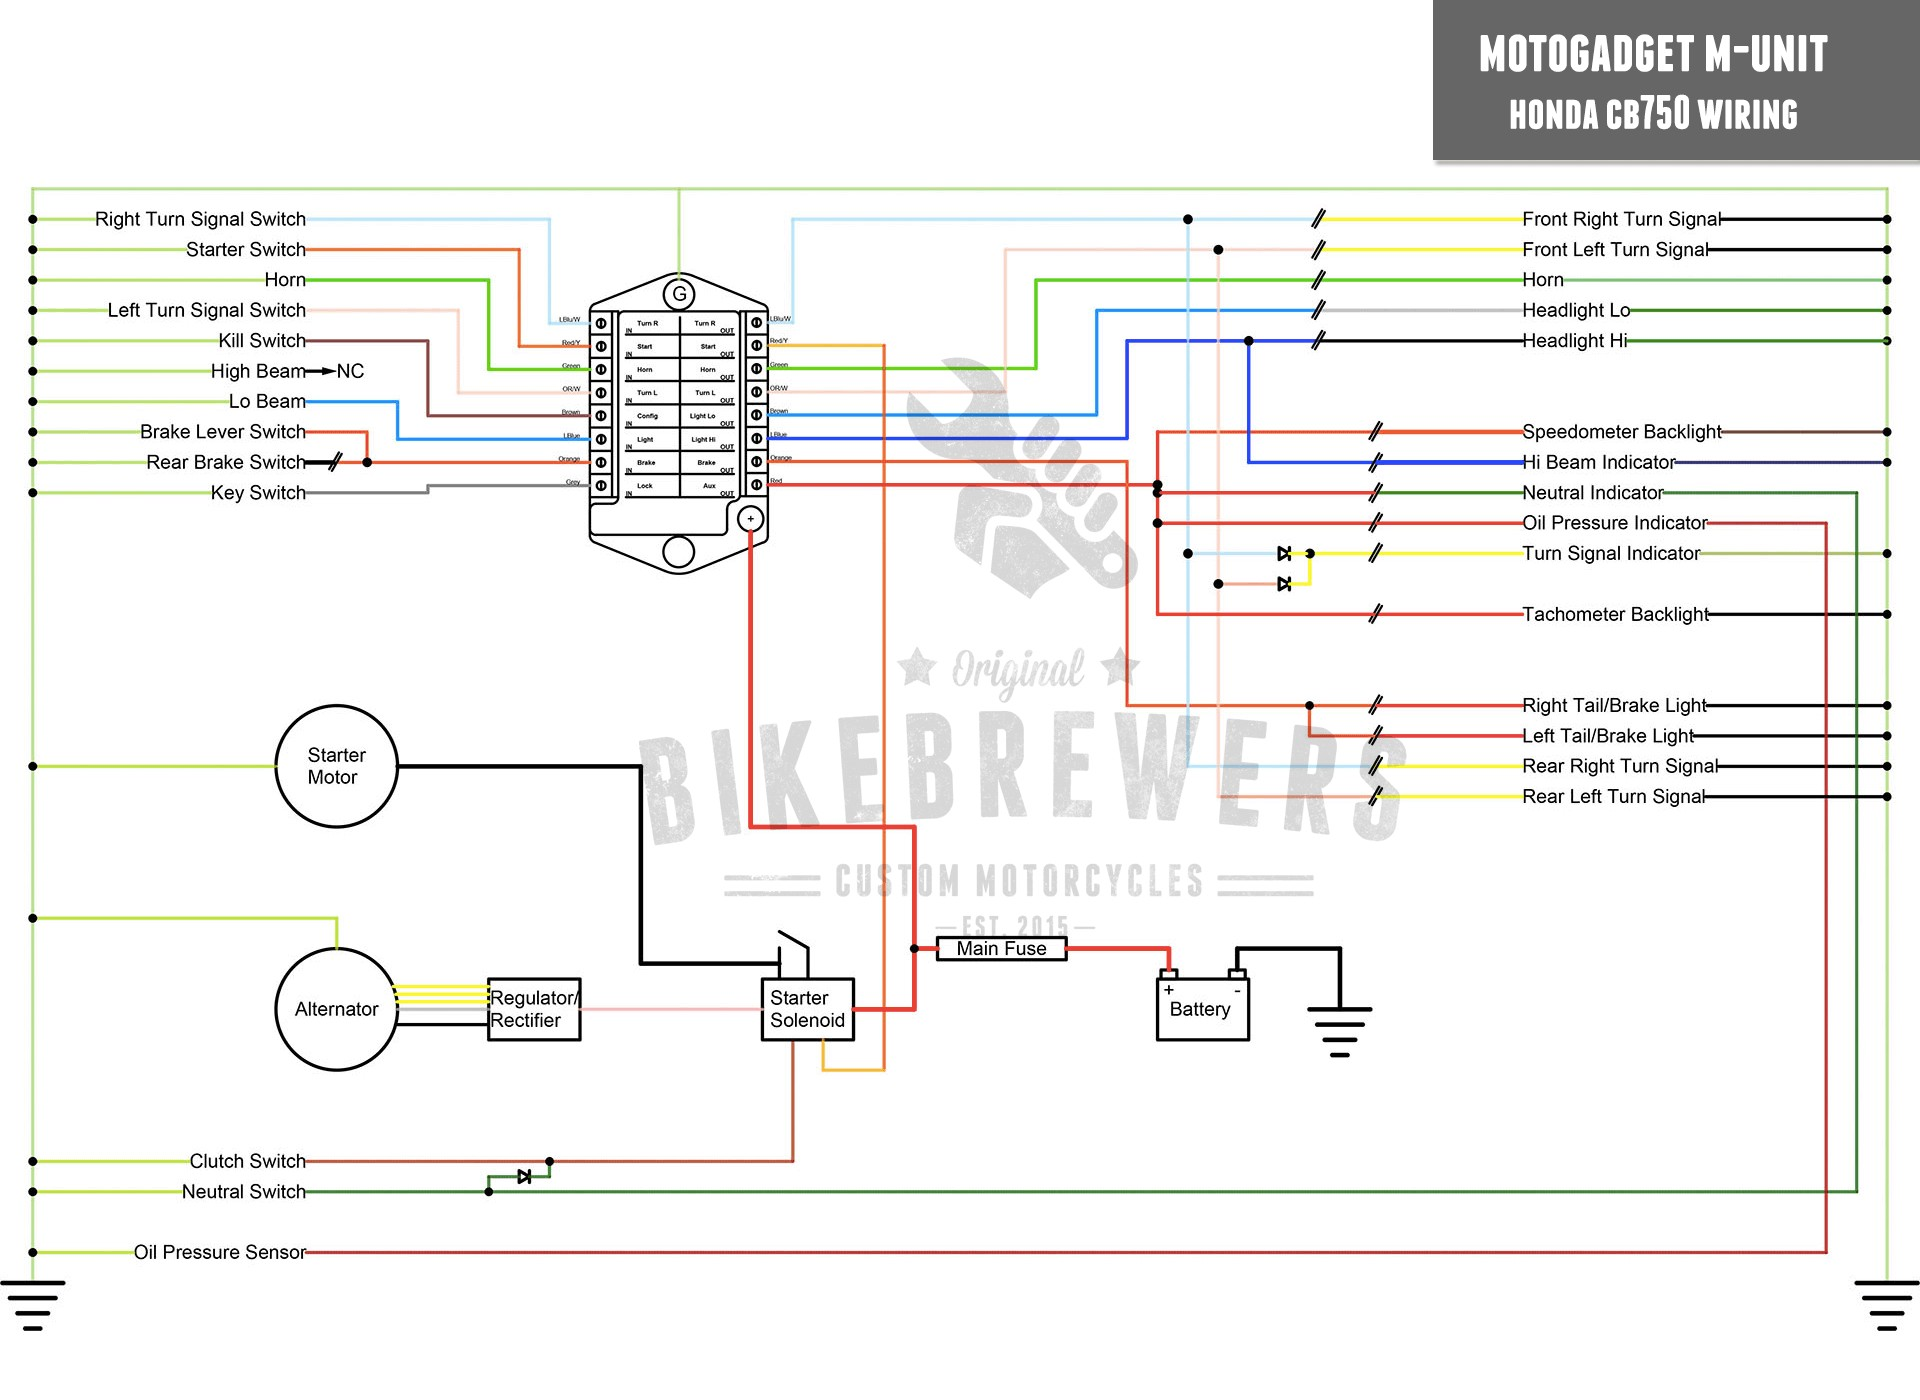 Digital Speedometer Circuit Diagram for Motorcycle Motogad M Unit Wiring Of Digital Speedometer Circuit Diagram for Motorcycle